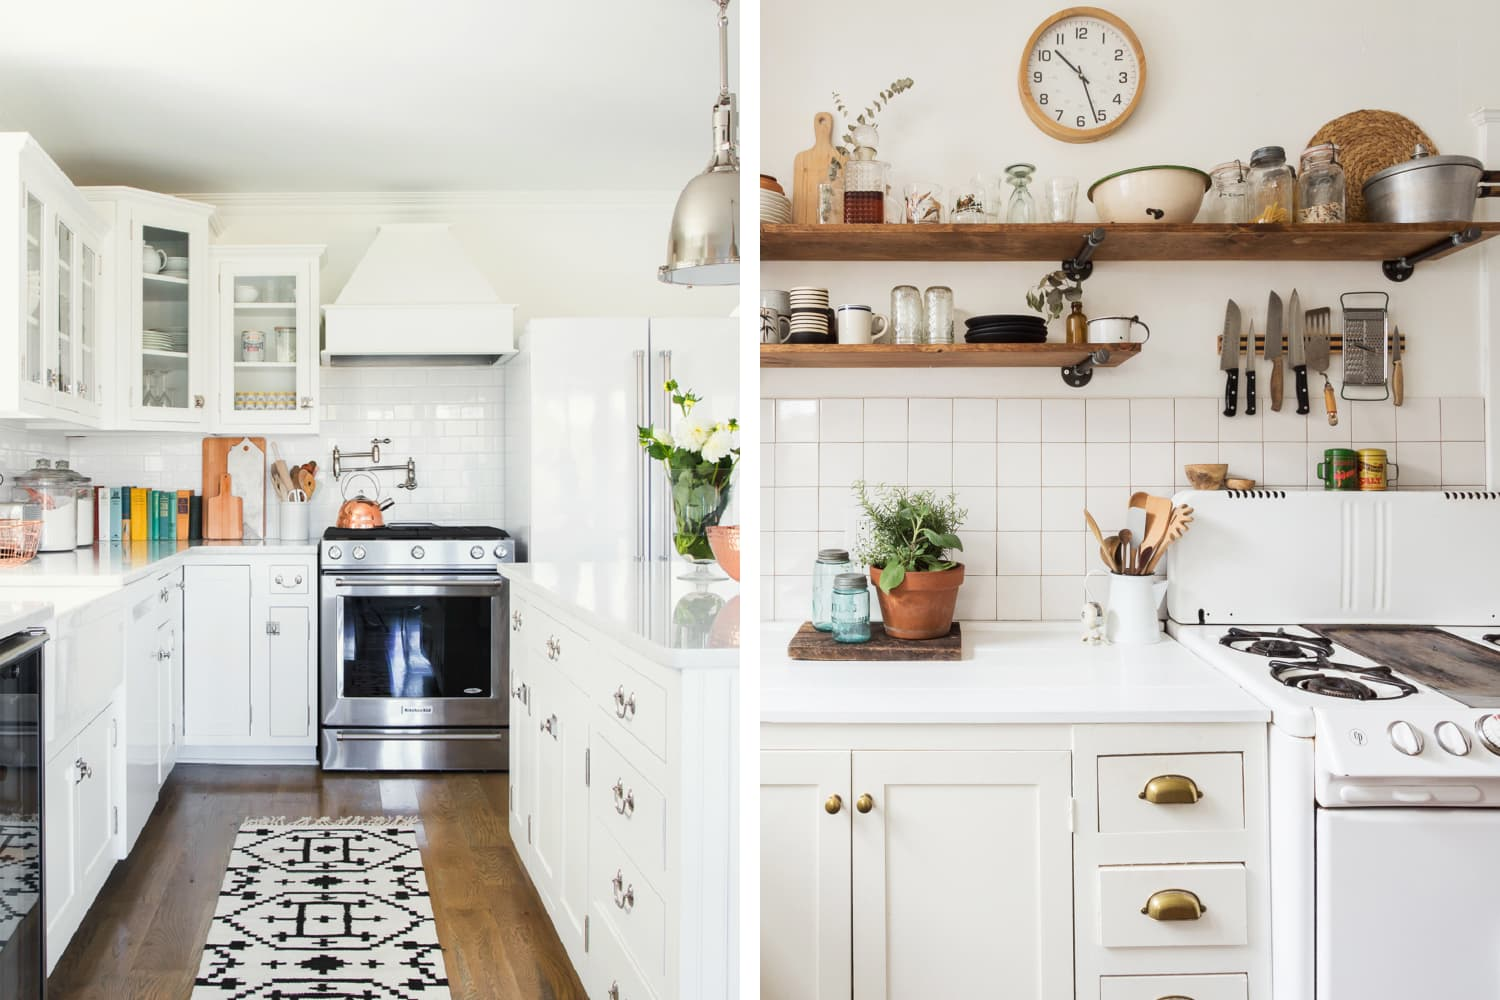 10 Of The Most Popular Farmhouse Kitchens On Apartment Therapy Kitchn